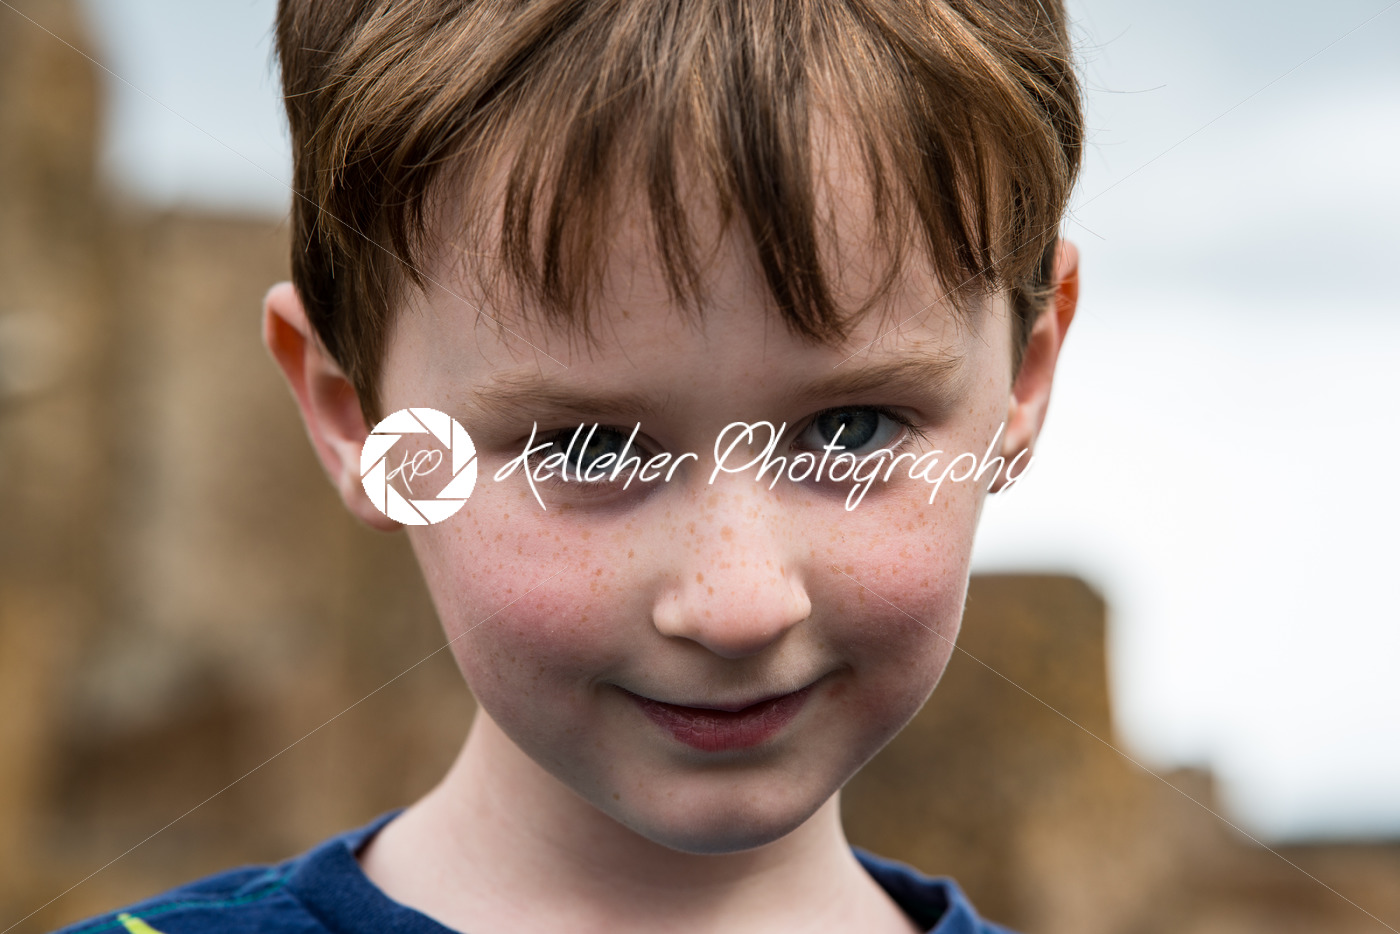 Young little boy portrait looking and smiling at the camera. - Kelleher Photography Store